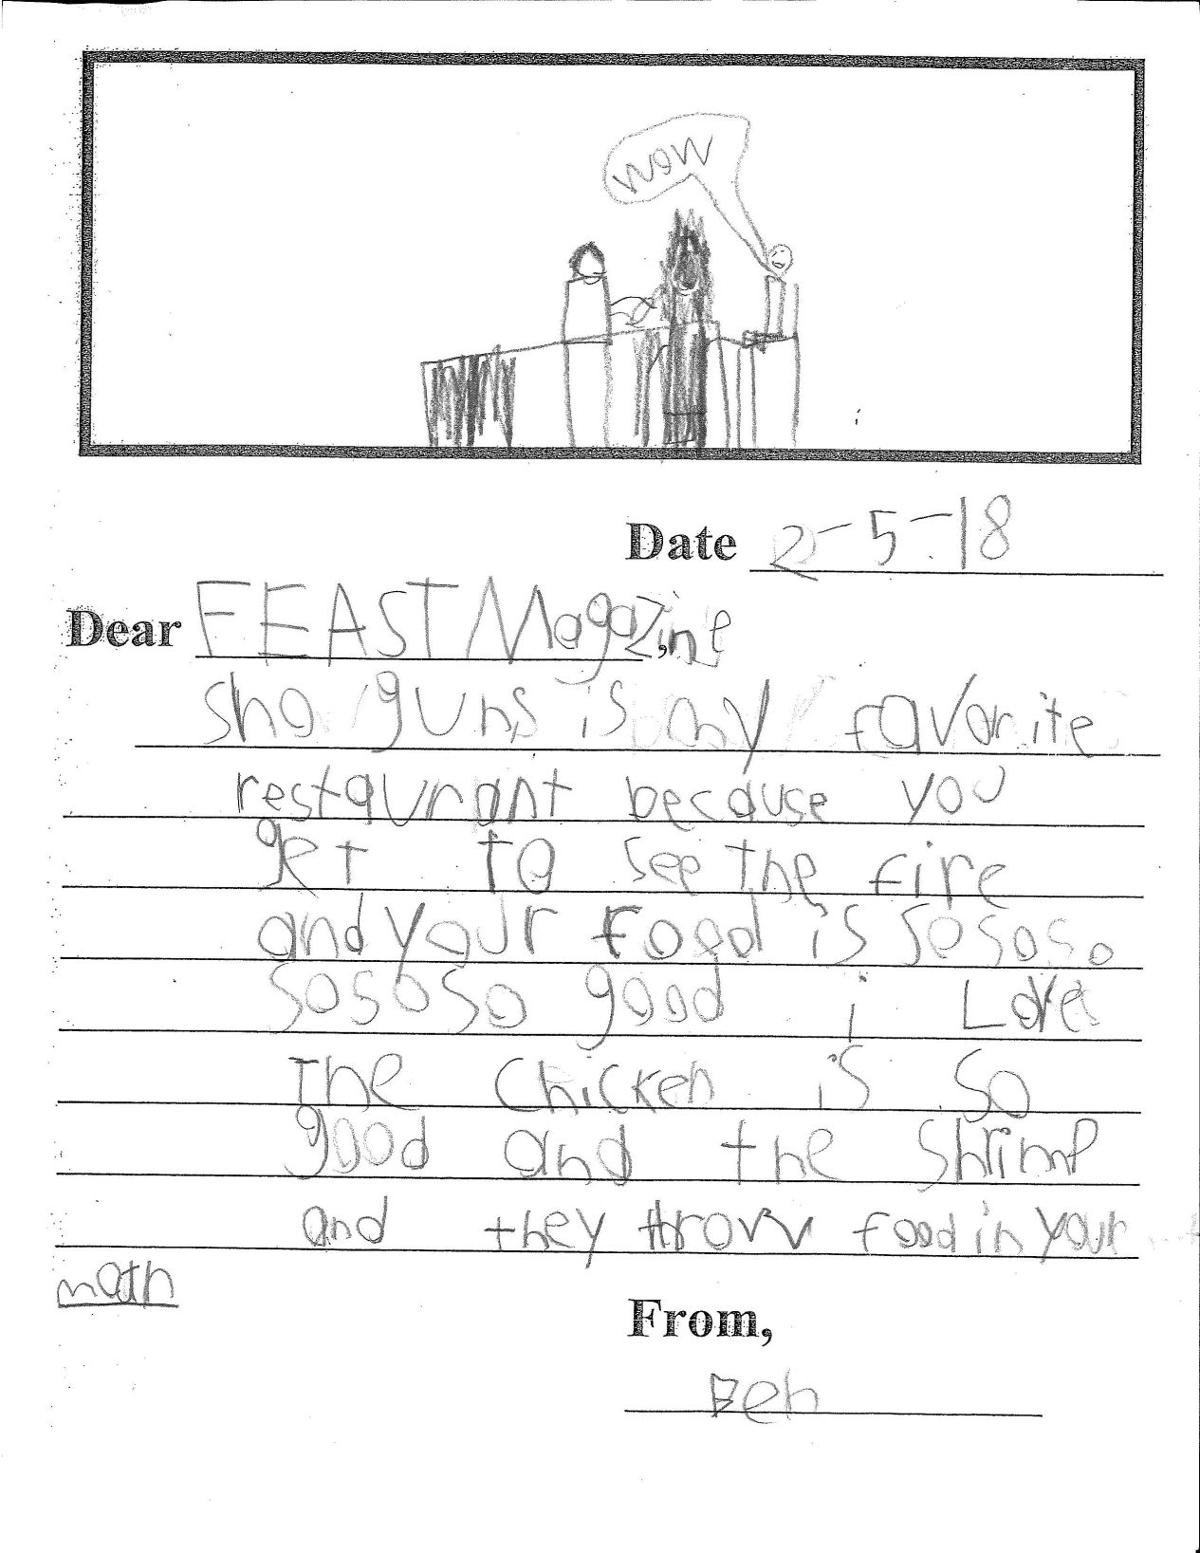 20 Second Graders Review Their Favorite St. Louis Restaurants   St ...